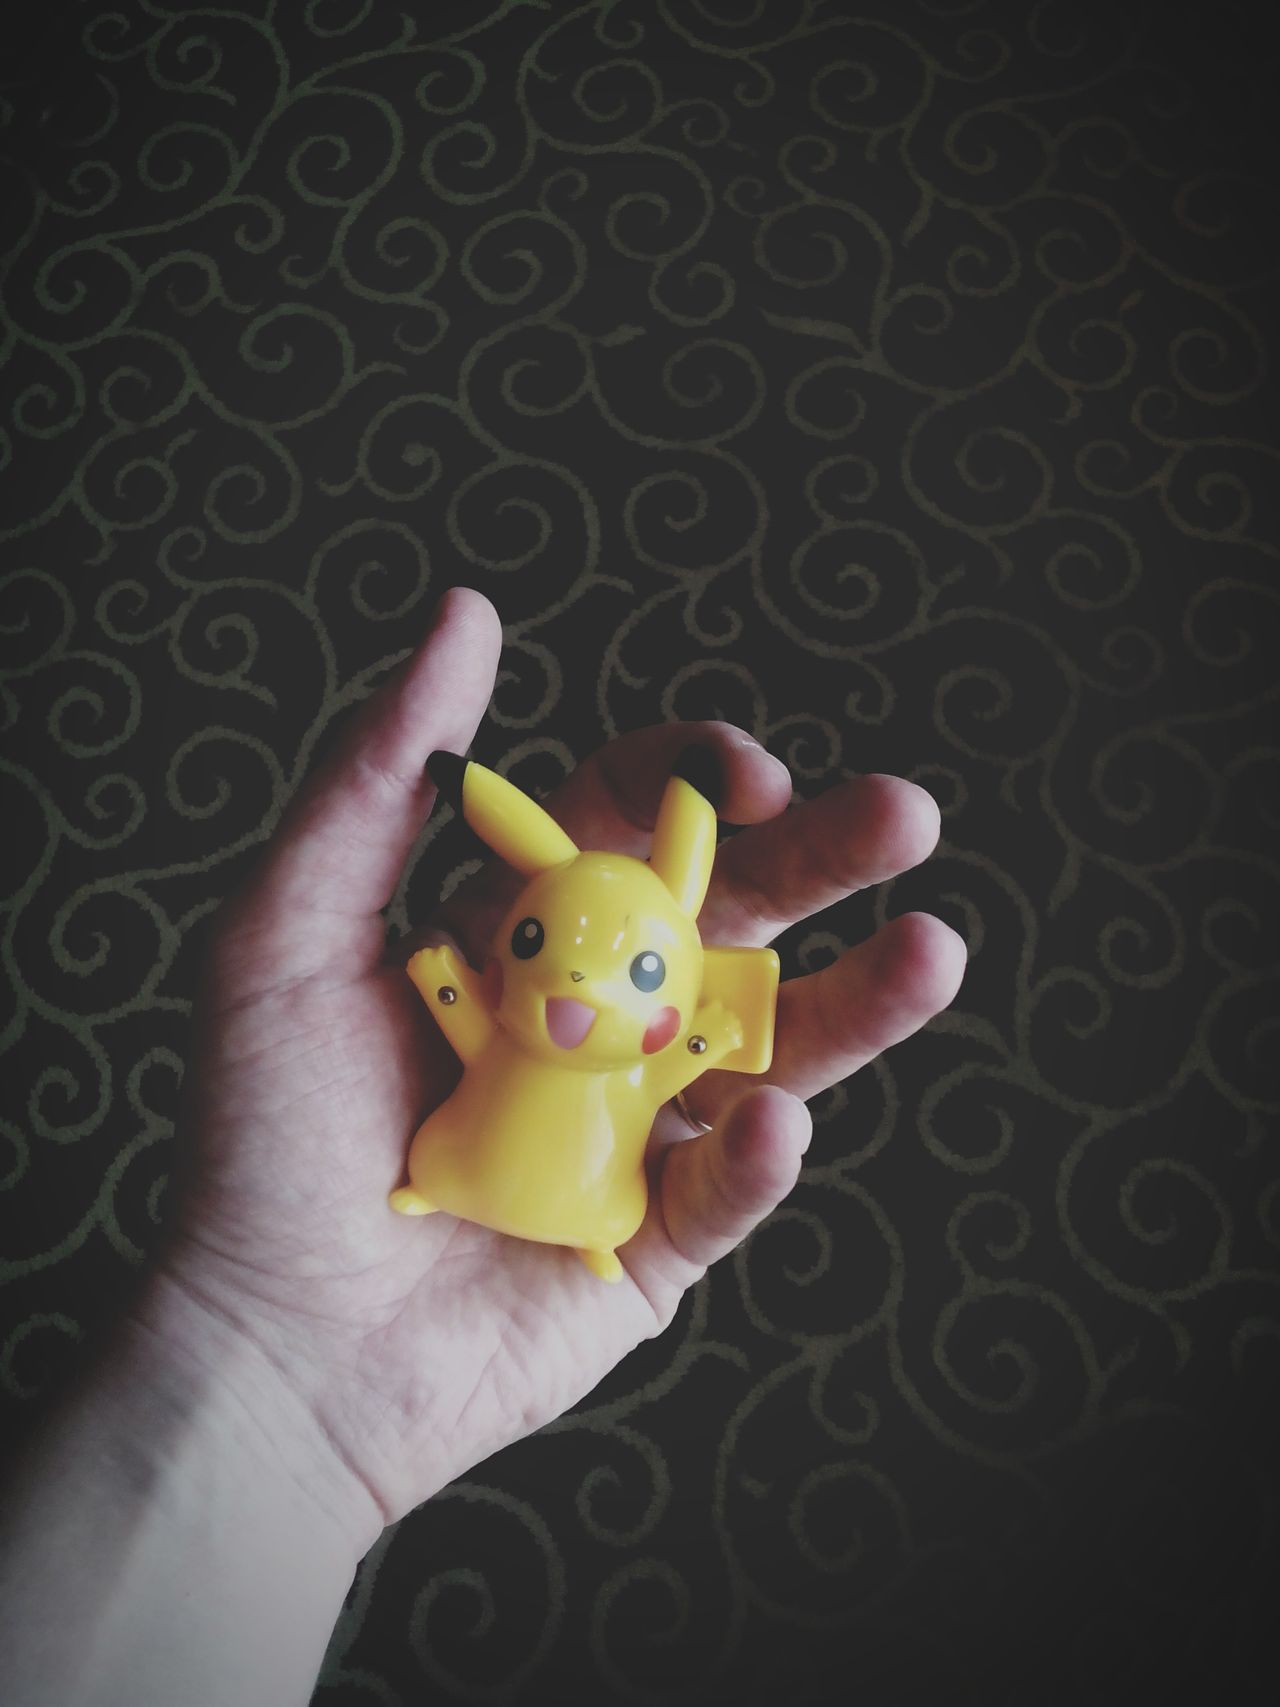 Catching pikachu Pokemon Go Pikachu Toys Game Kids Hand Catch Fun